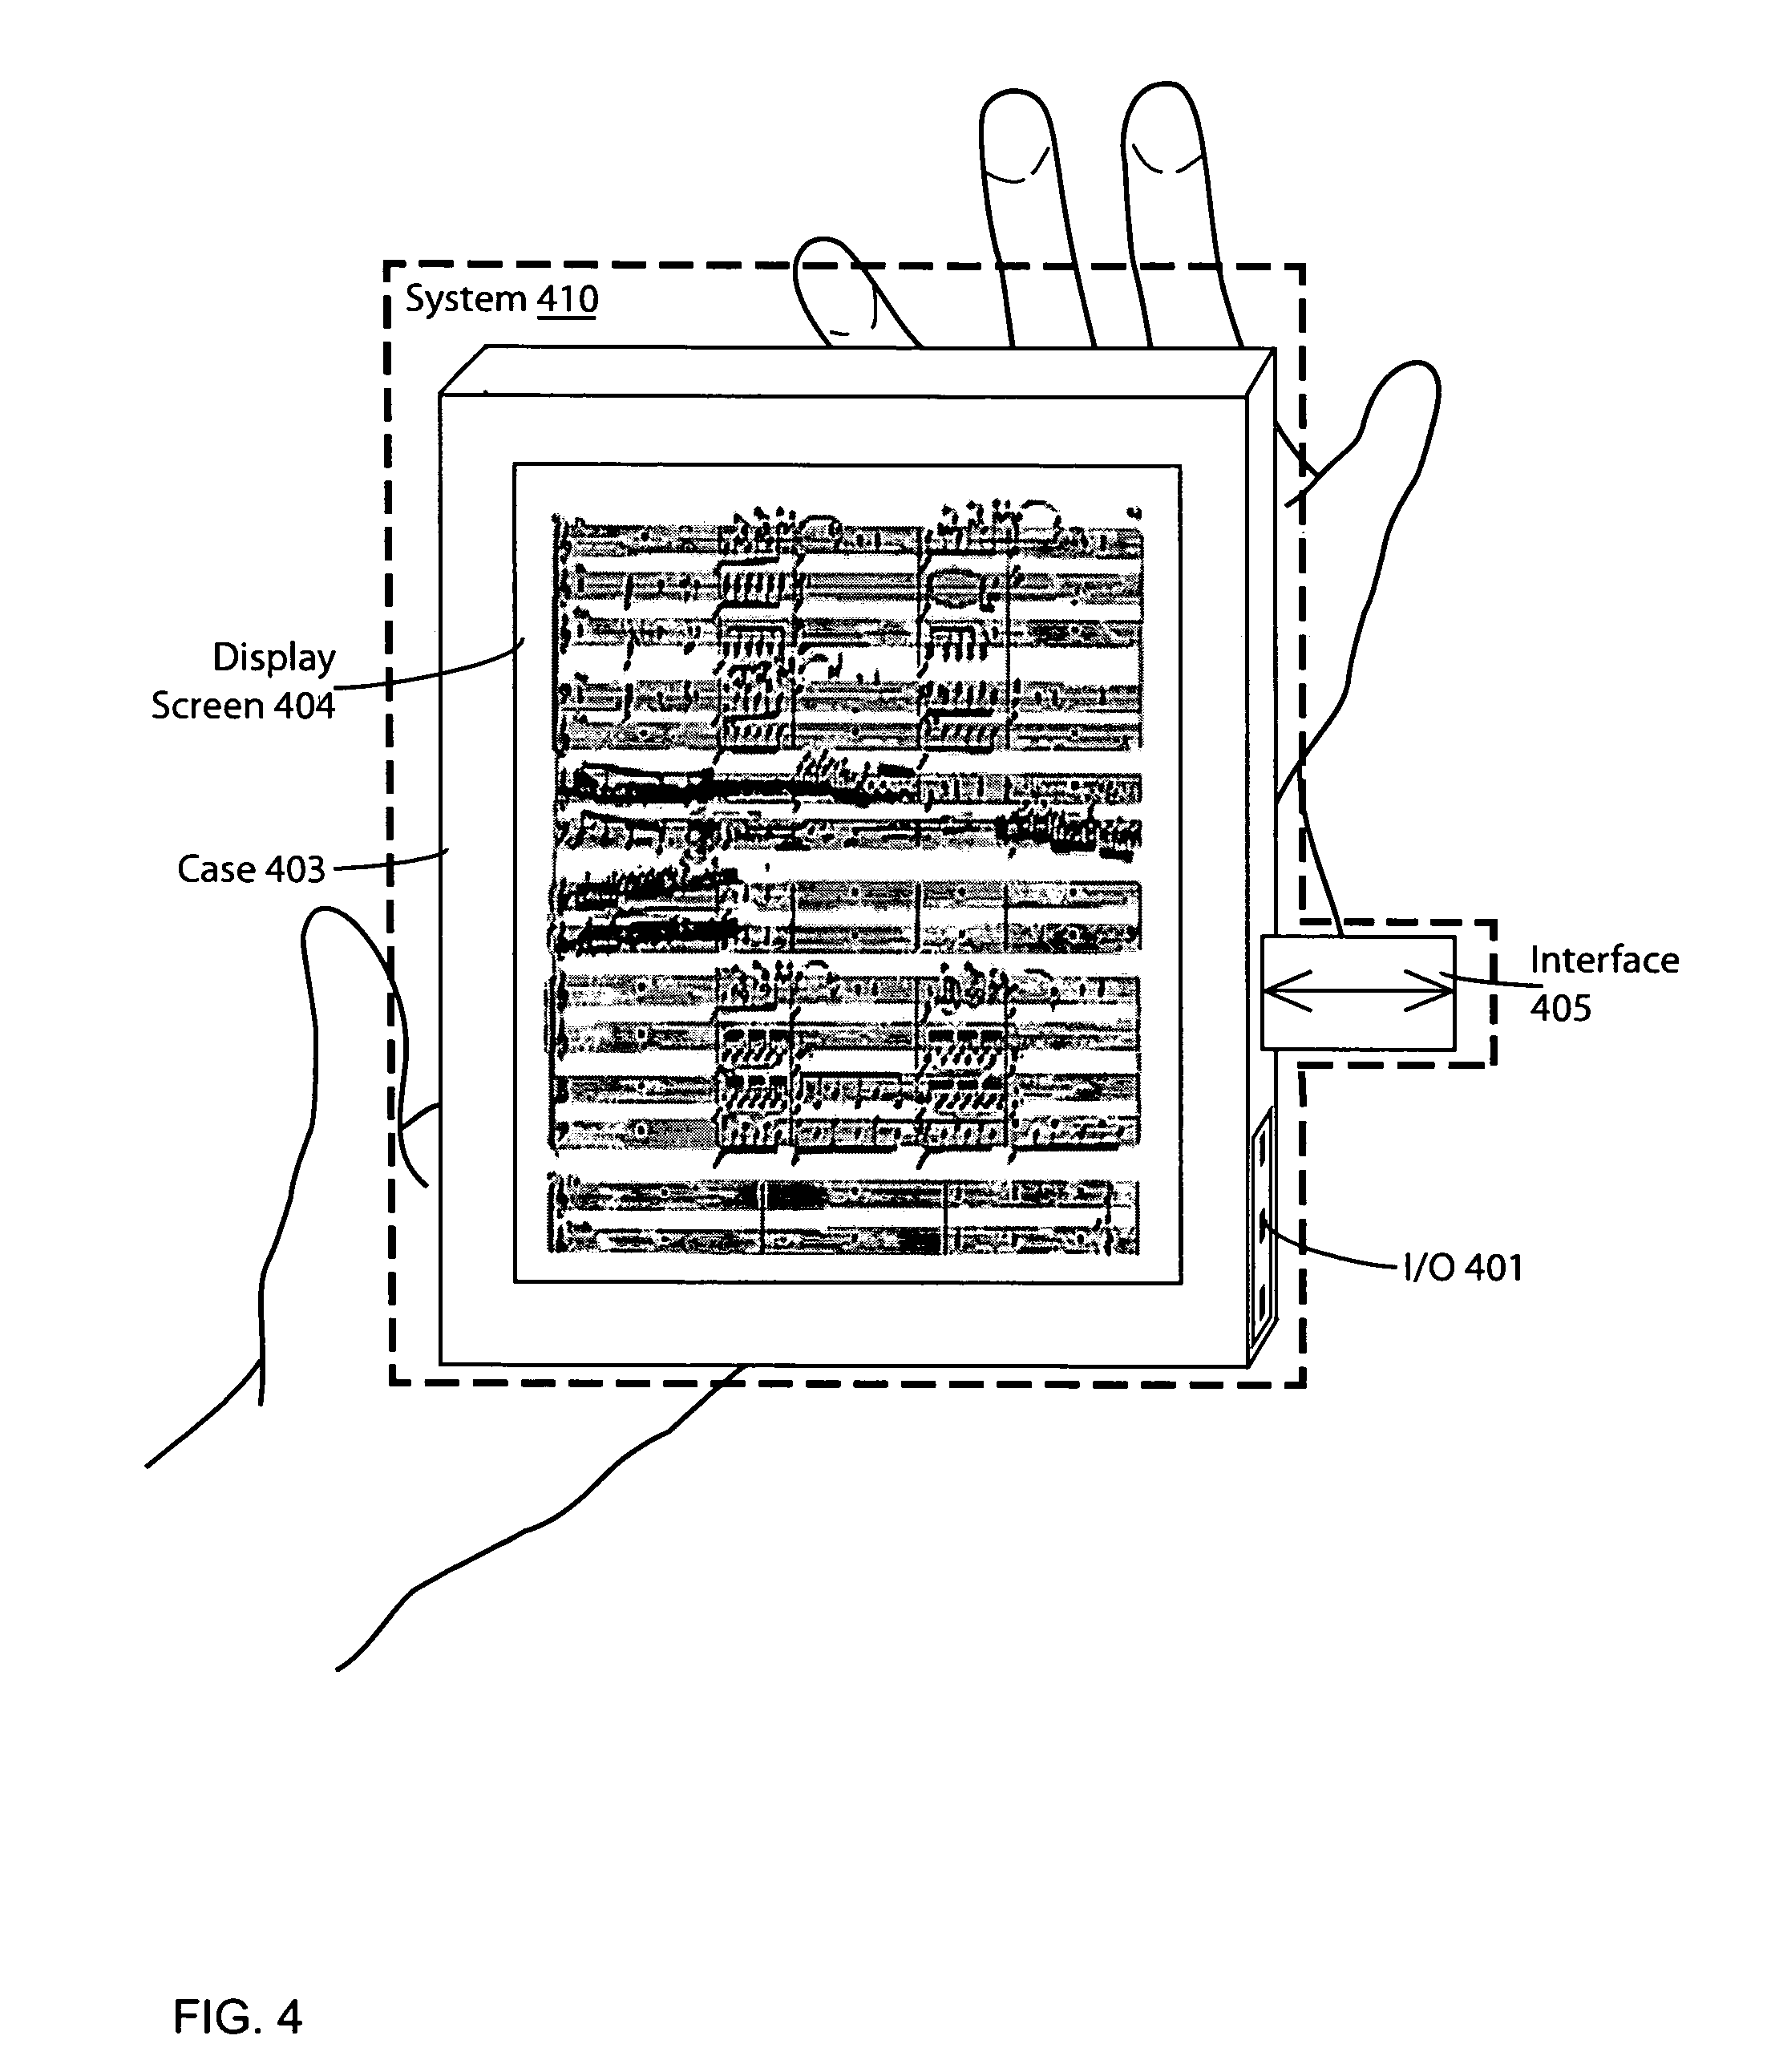 Patent Us 7989689 B2 Diagram D Audio For 410 Rooms Using A Second Stereo Receiver